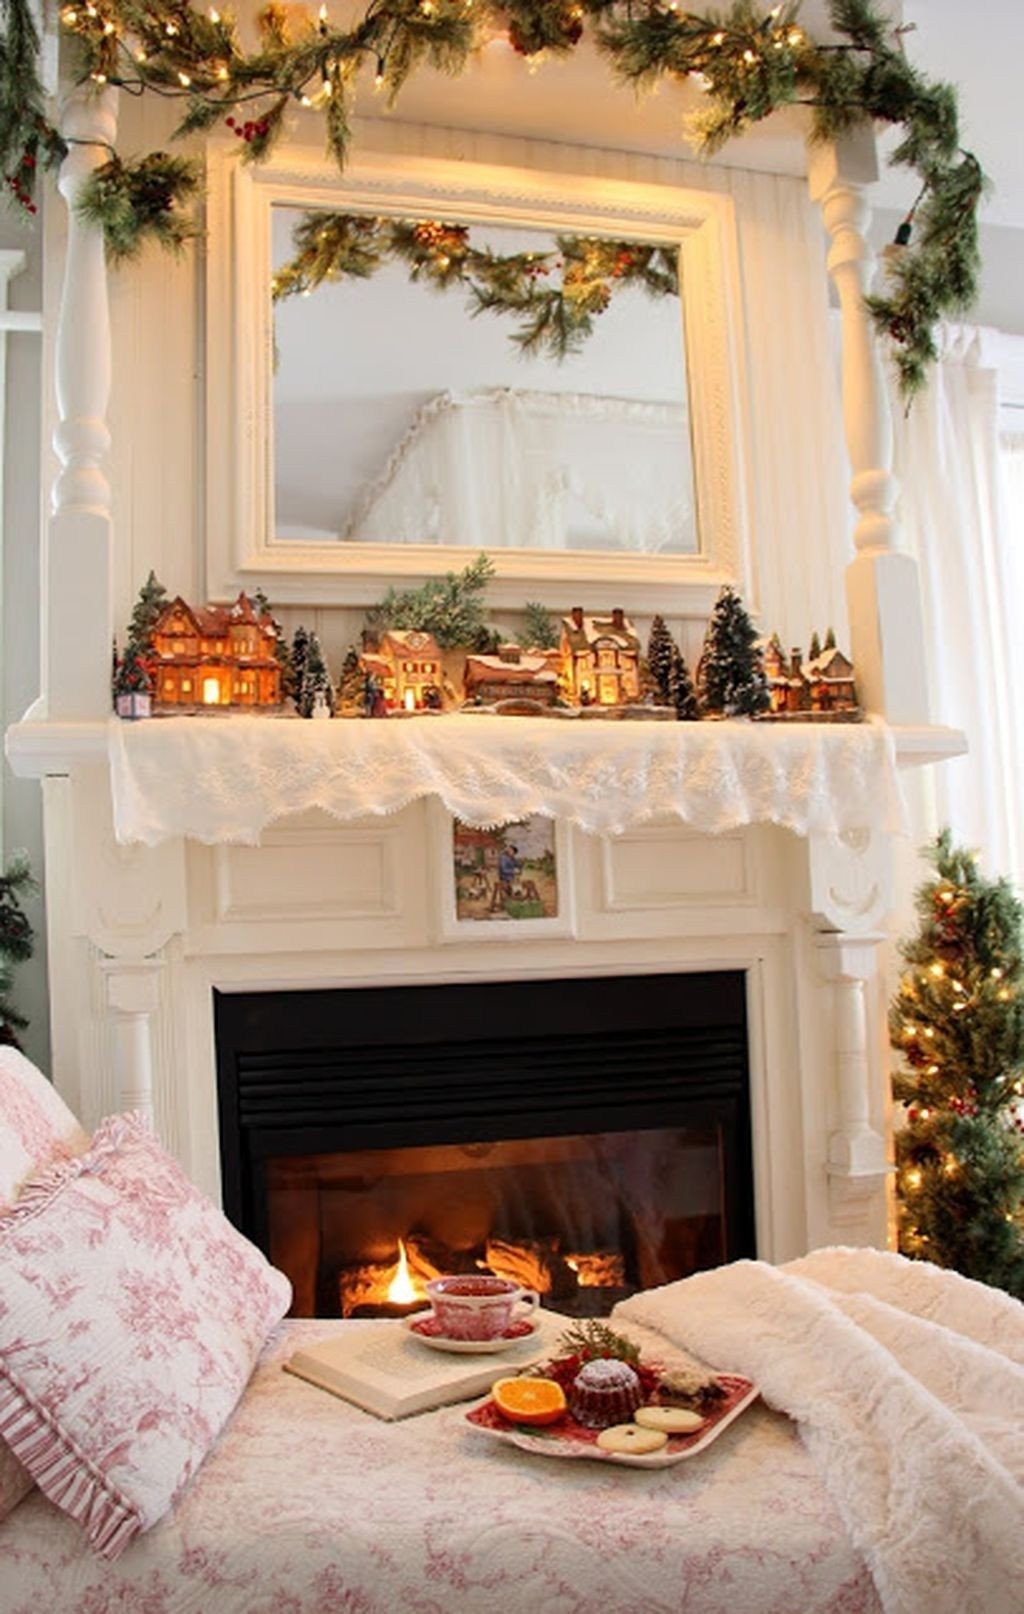 Christmas Bedroom Decorating Ideas Inspirational 40 Cozy Chistmas House Decoration